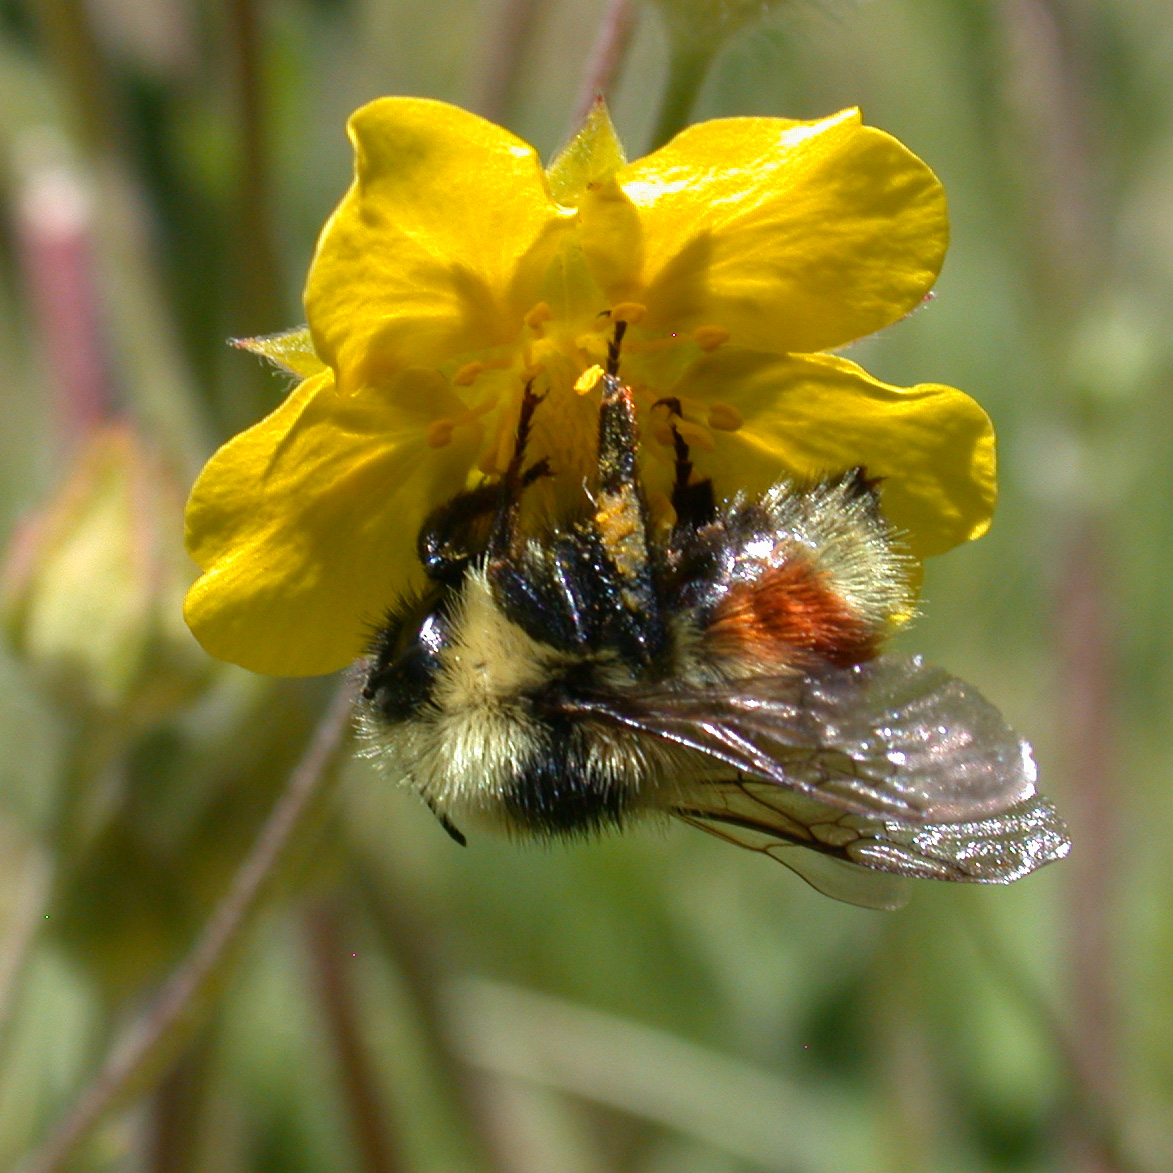 A bumble bee with fuzzy, somewhat distinct body segments, clings to a yellow flower.